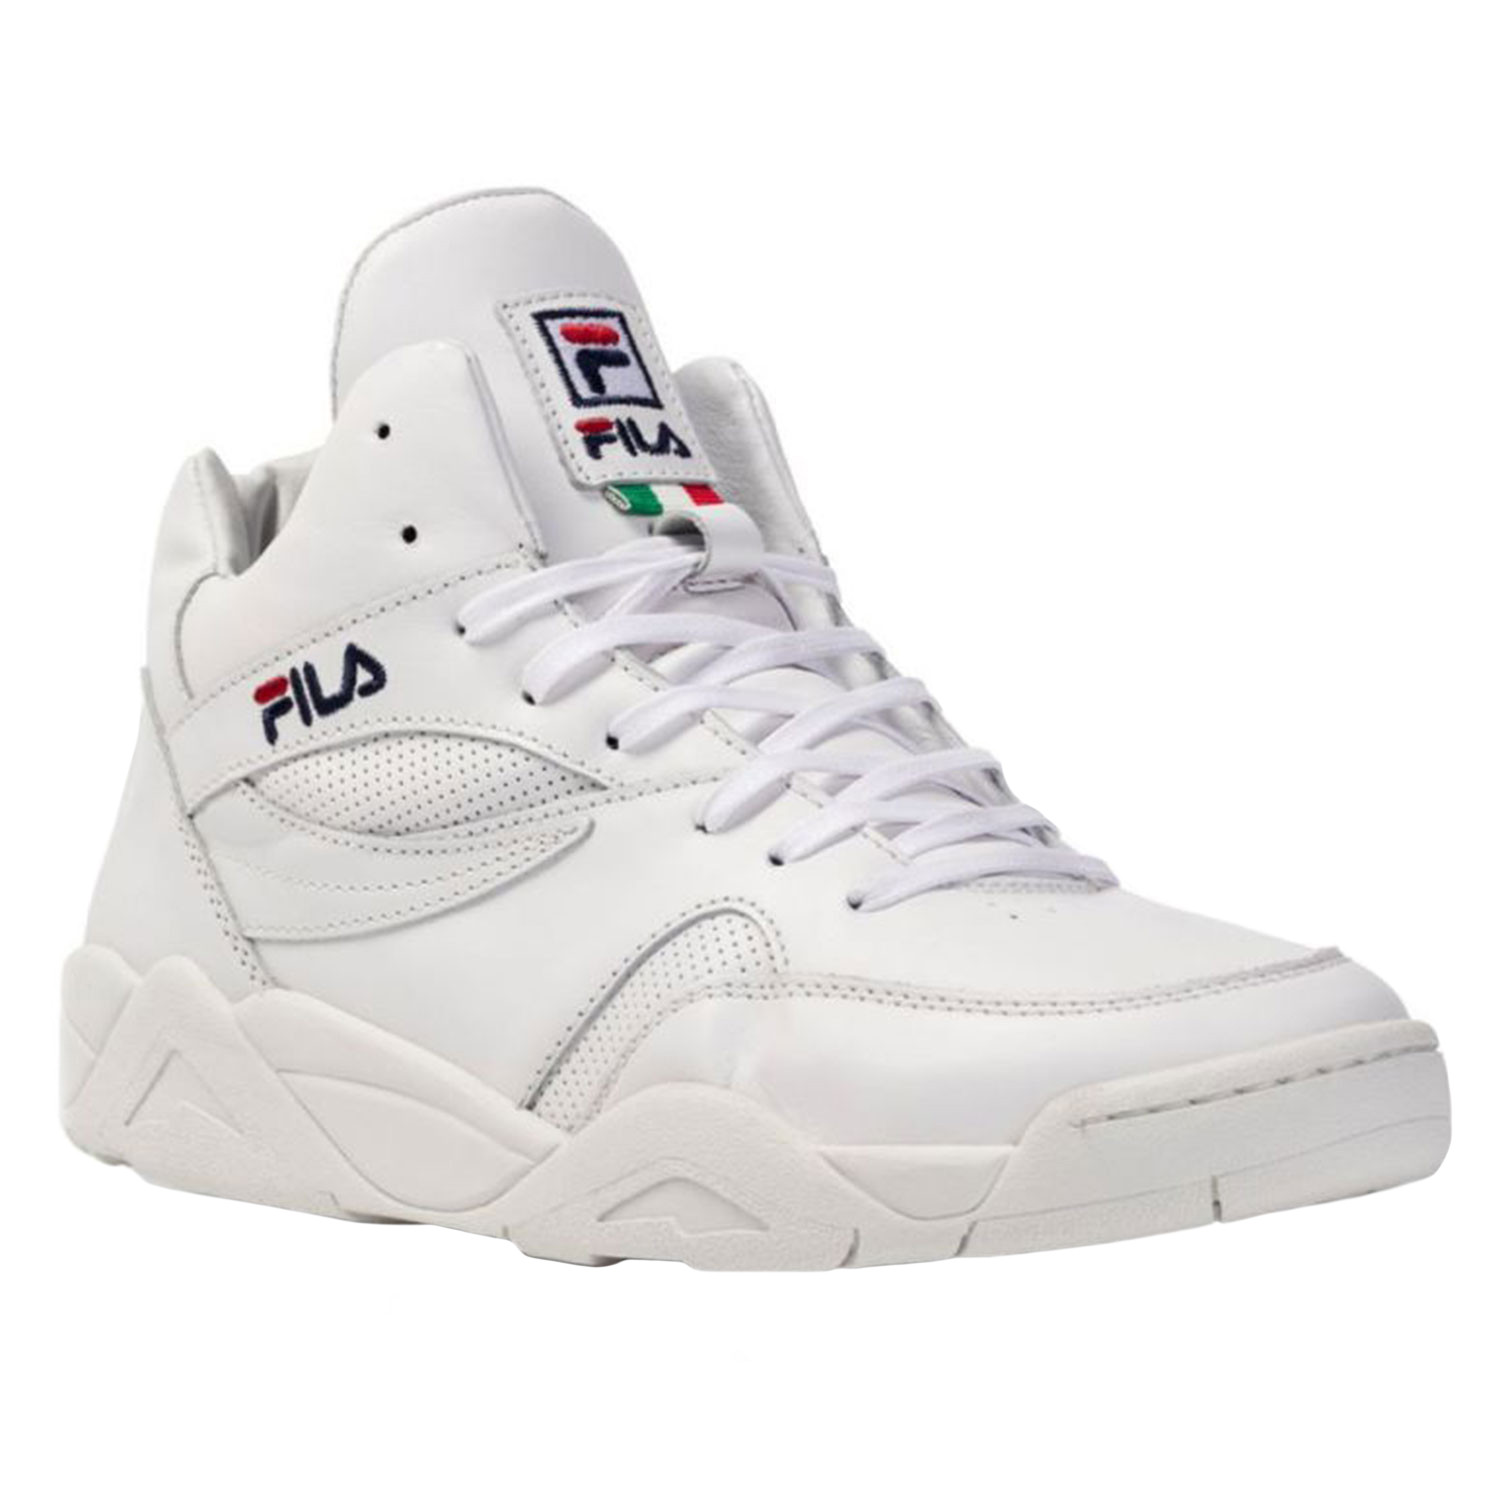 Montantes Cher Mid Pas Blanc Pine Homme Fila Baskets Chaussure FKJcTl31